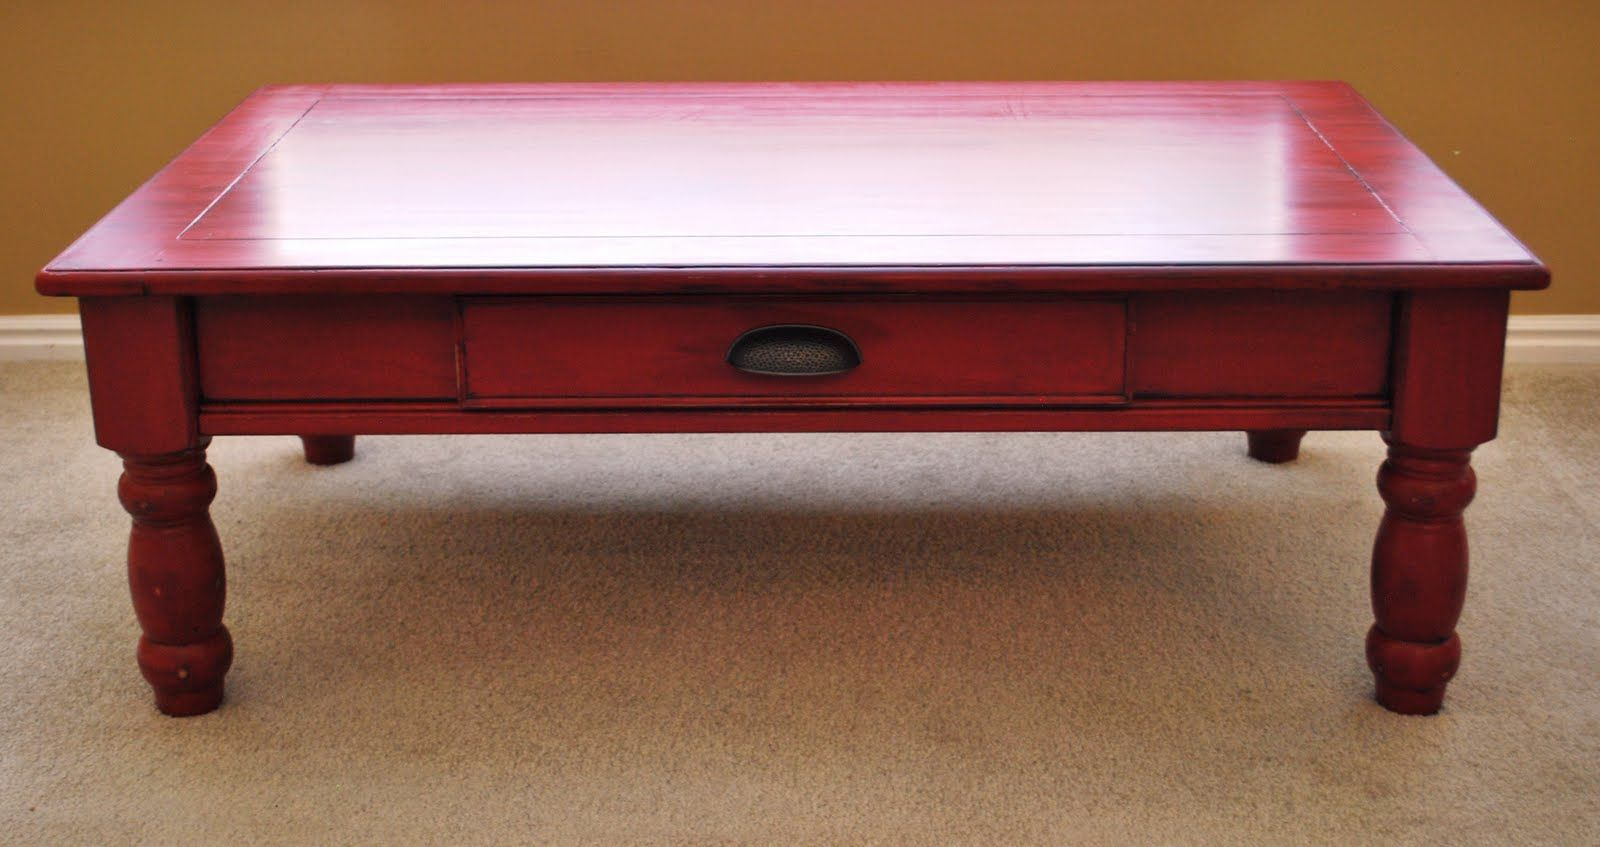 painted coffee table red used tables and end caldwell chalk paint mine gonna use this color old family hope chest round patio set laura ashley armchairs futon dryer furniture row